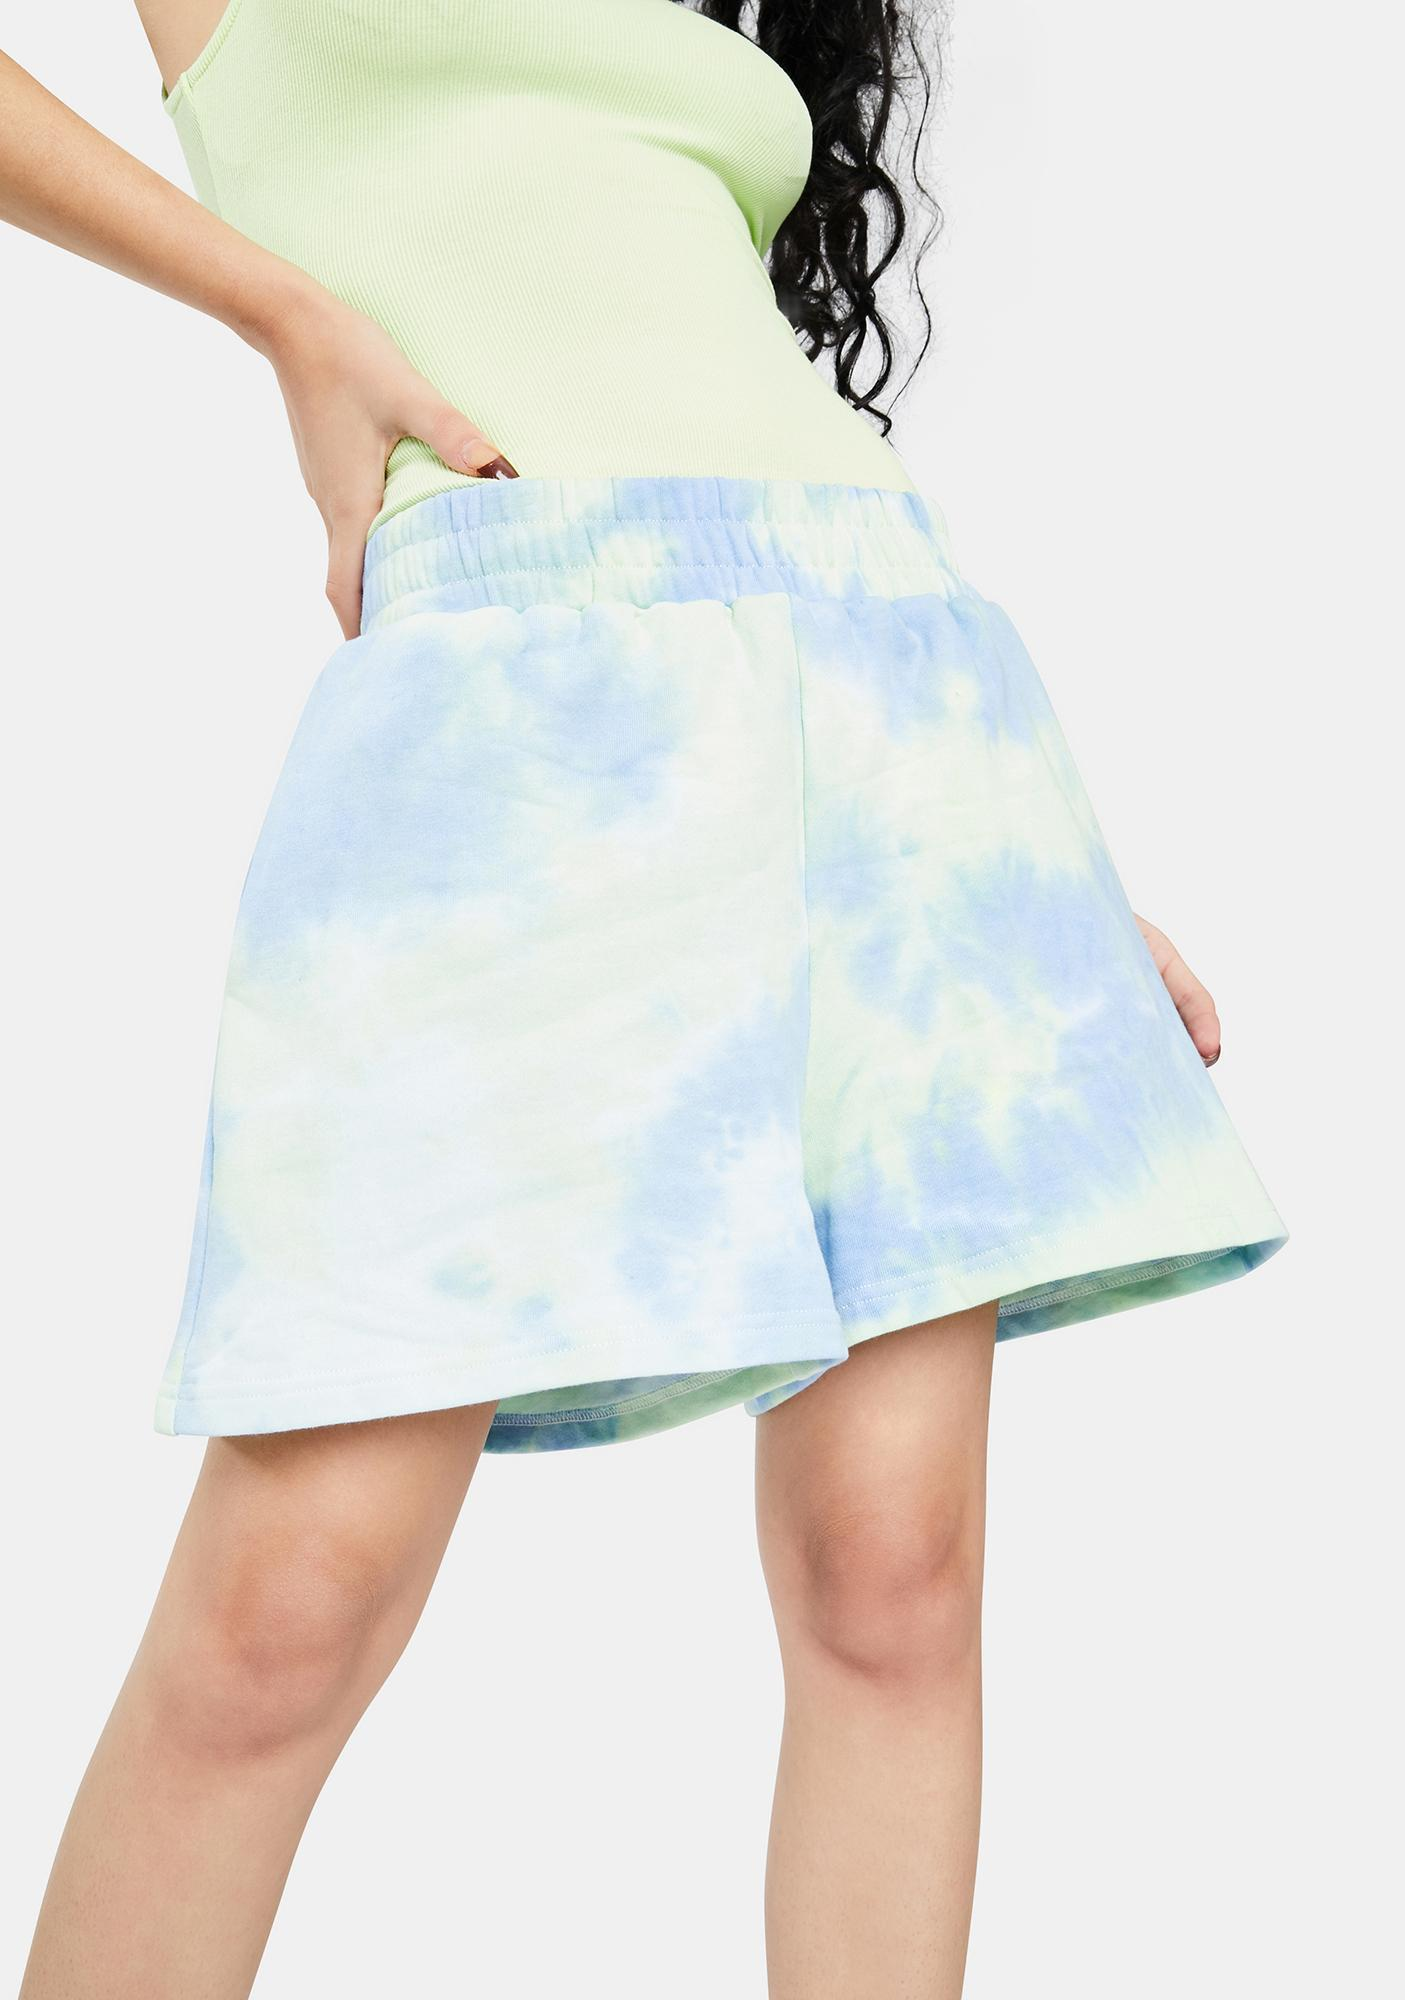 BY DYLN Blue Lincoln Track Shorts